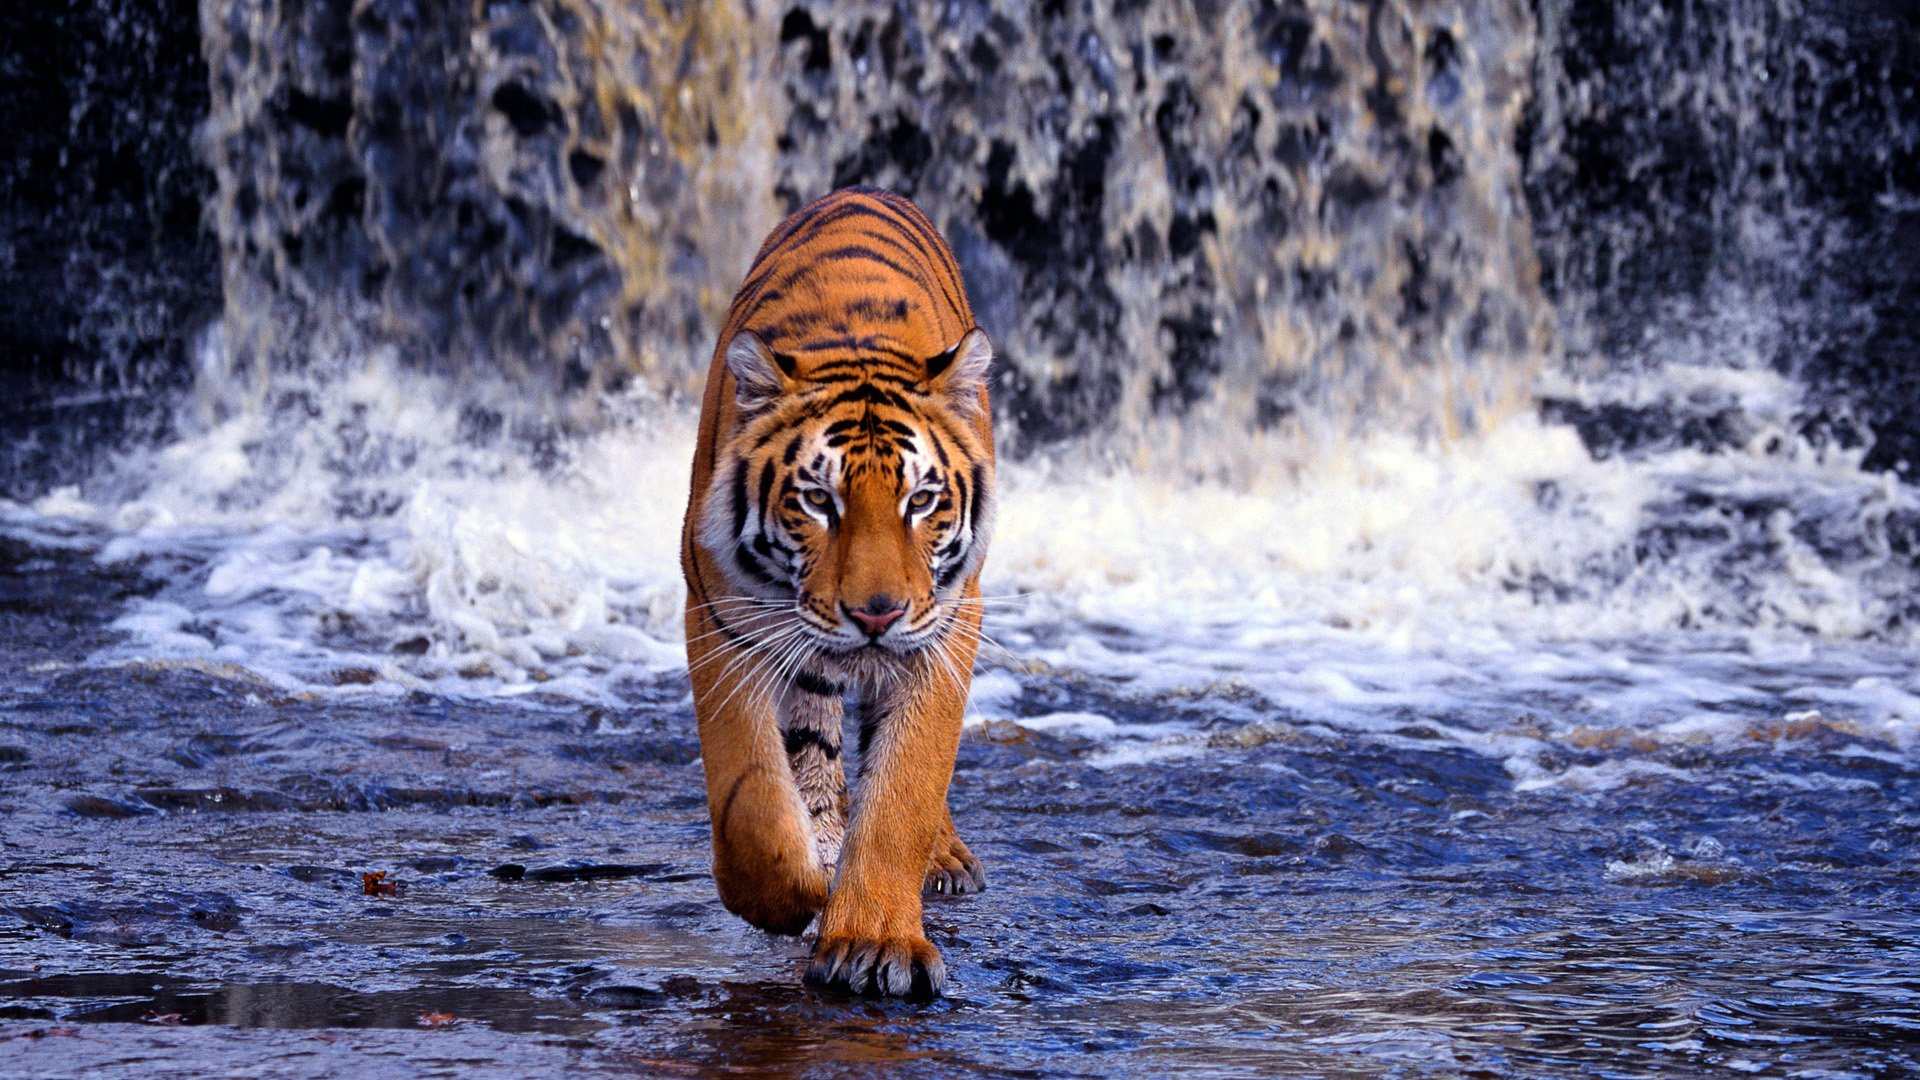 1283 tiger hd wallpapers | background images - wallpaper abyss